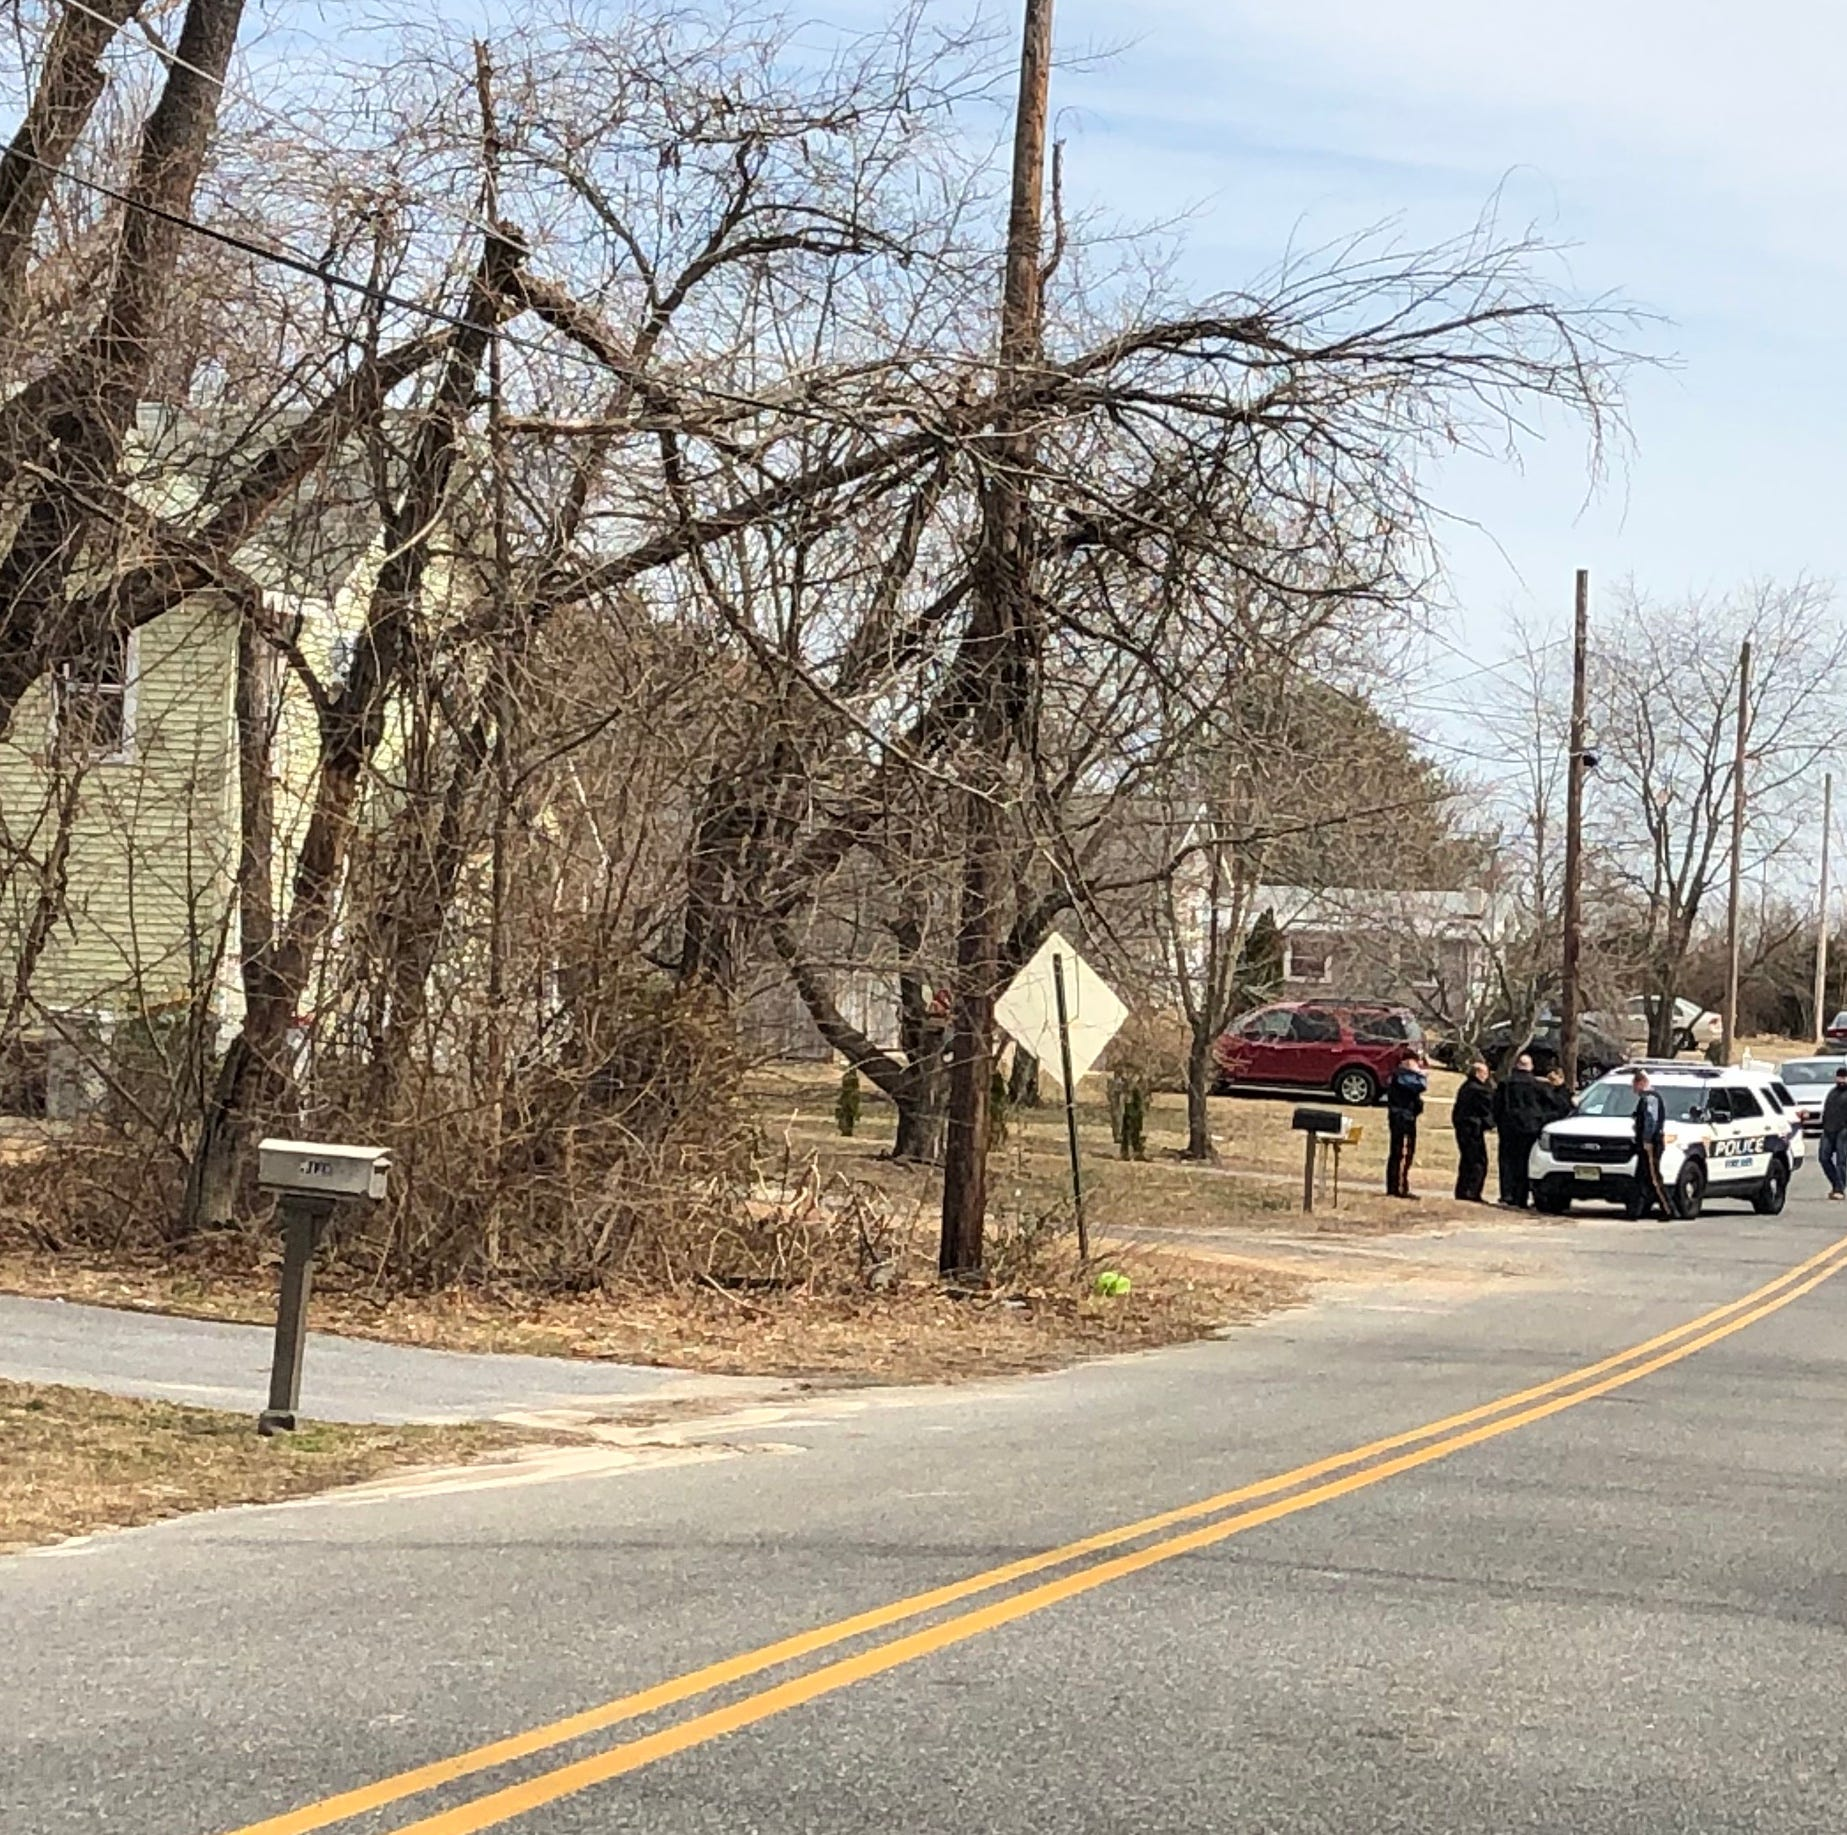 Vineland man shot in hand, investigation continues, police say